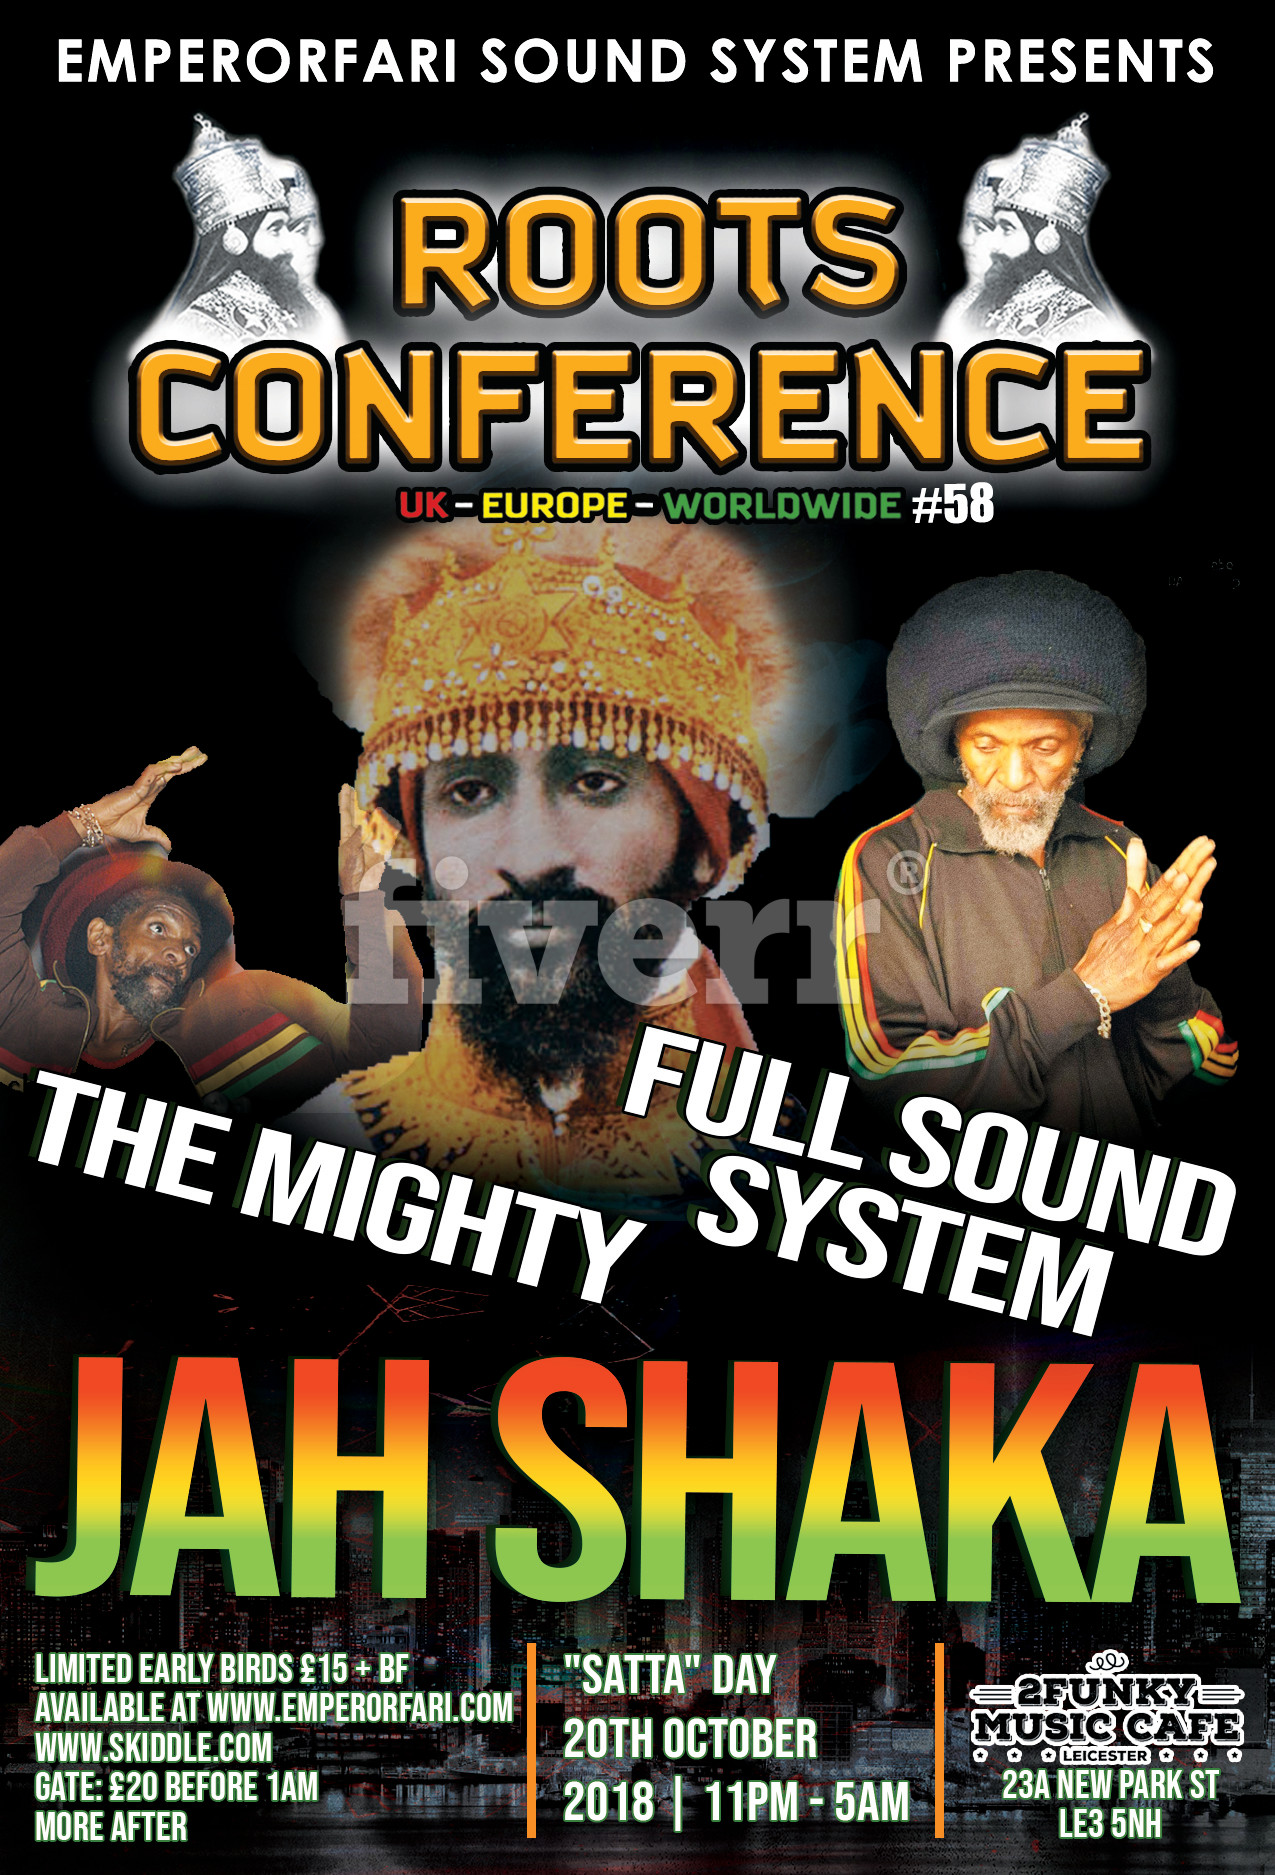 ***JAH SHAKA*** WITH FULL SOUND SYSTEM – ROOTS CONFERENCE #58